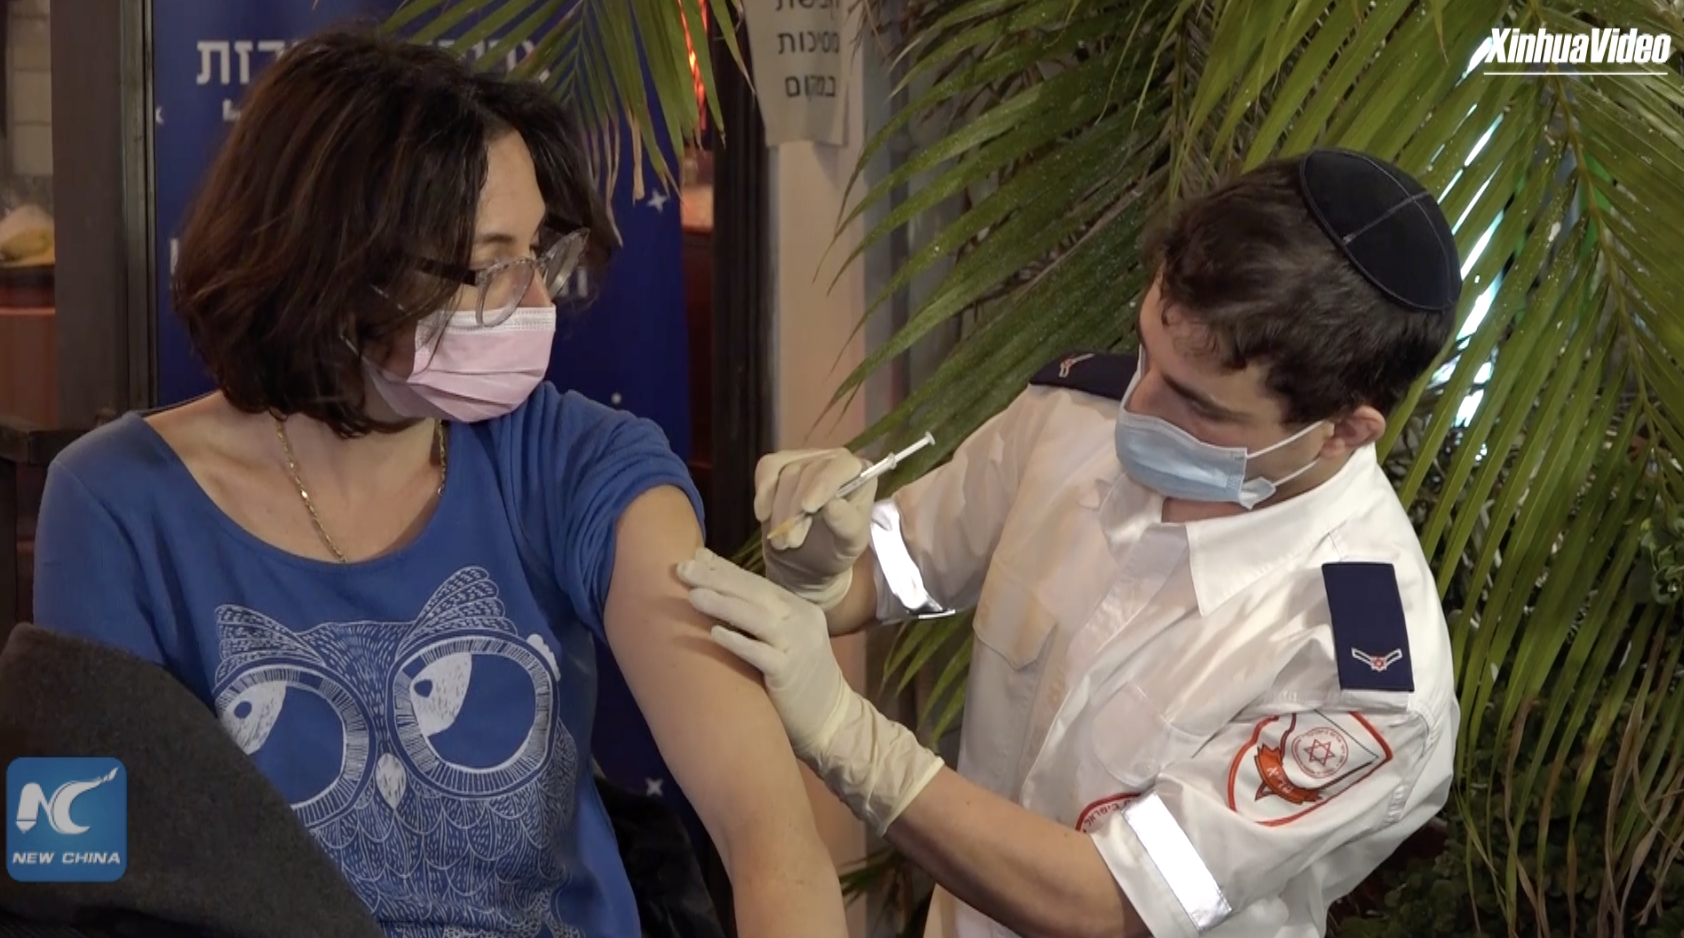 Israeli city offers free drinks to encourage COVID-19 vaccination among young people